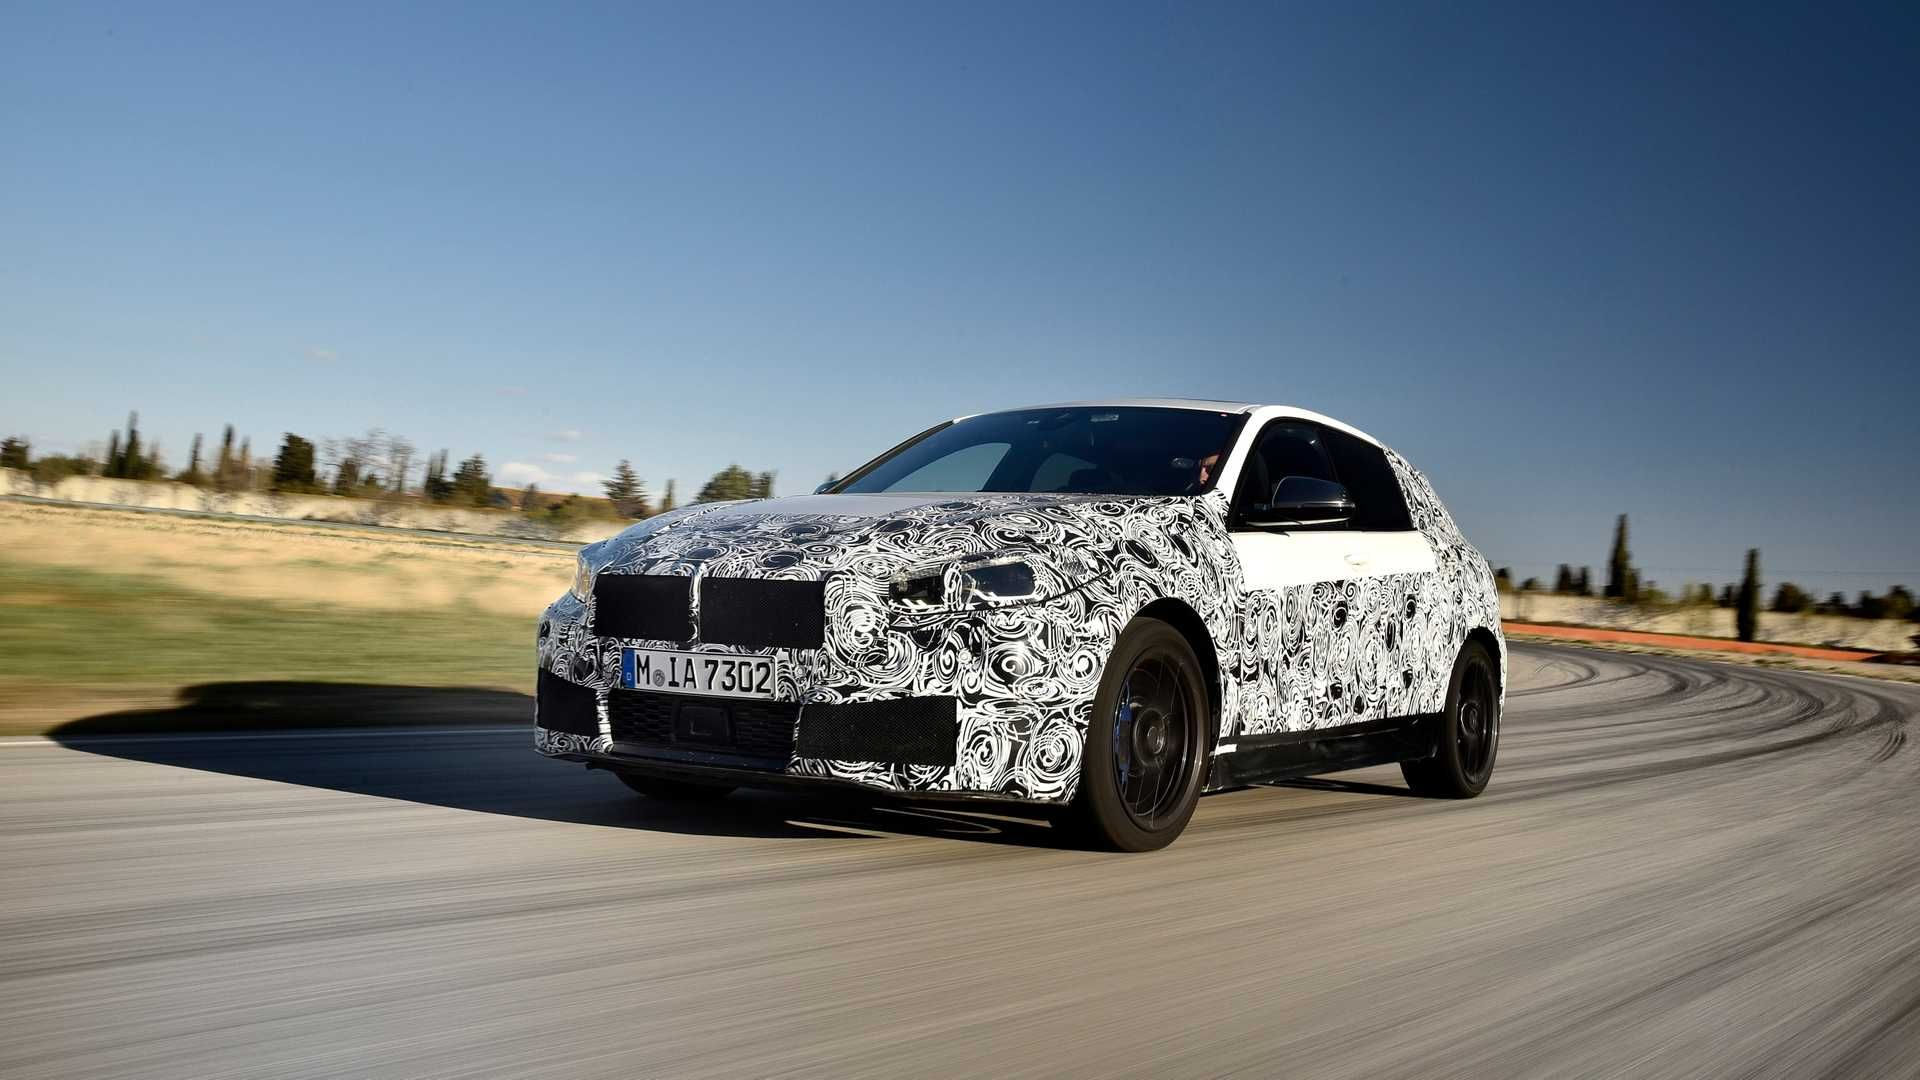 New Bmw 1 Series Confirmed With Fwd M235i Gets Xdrive And 302 Hp 225 Kw Bmw 1 Series Bmw New Bmw